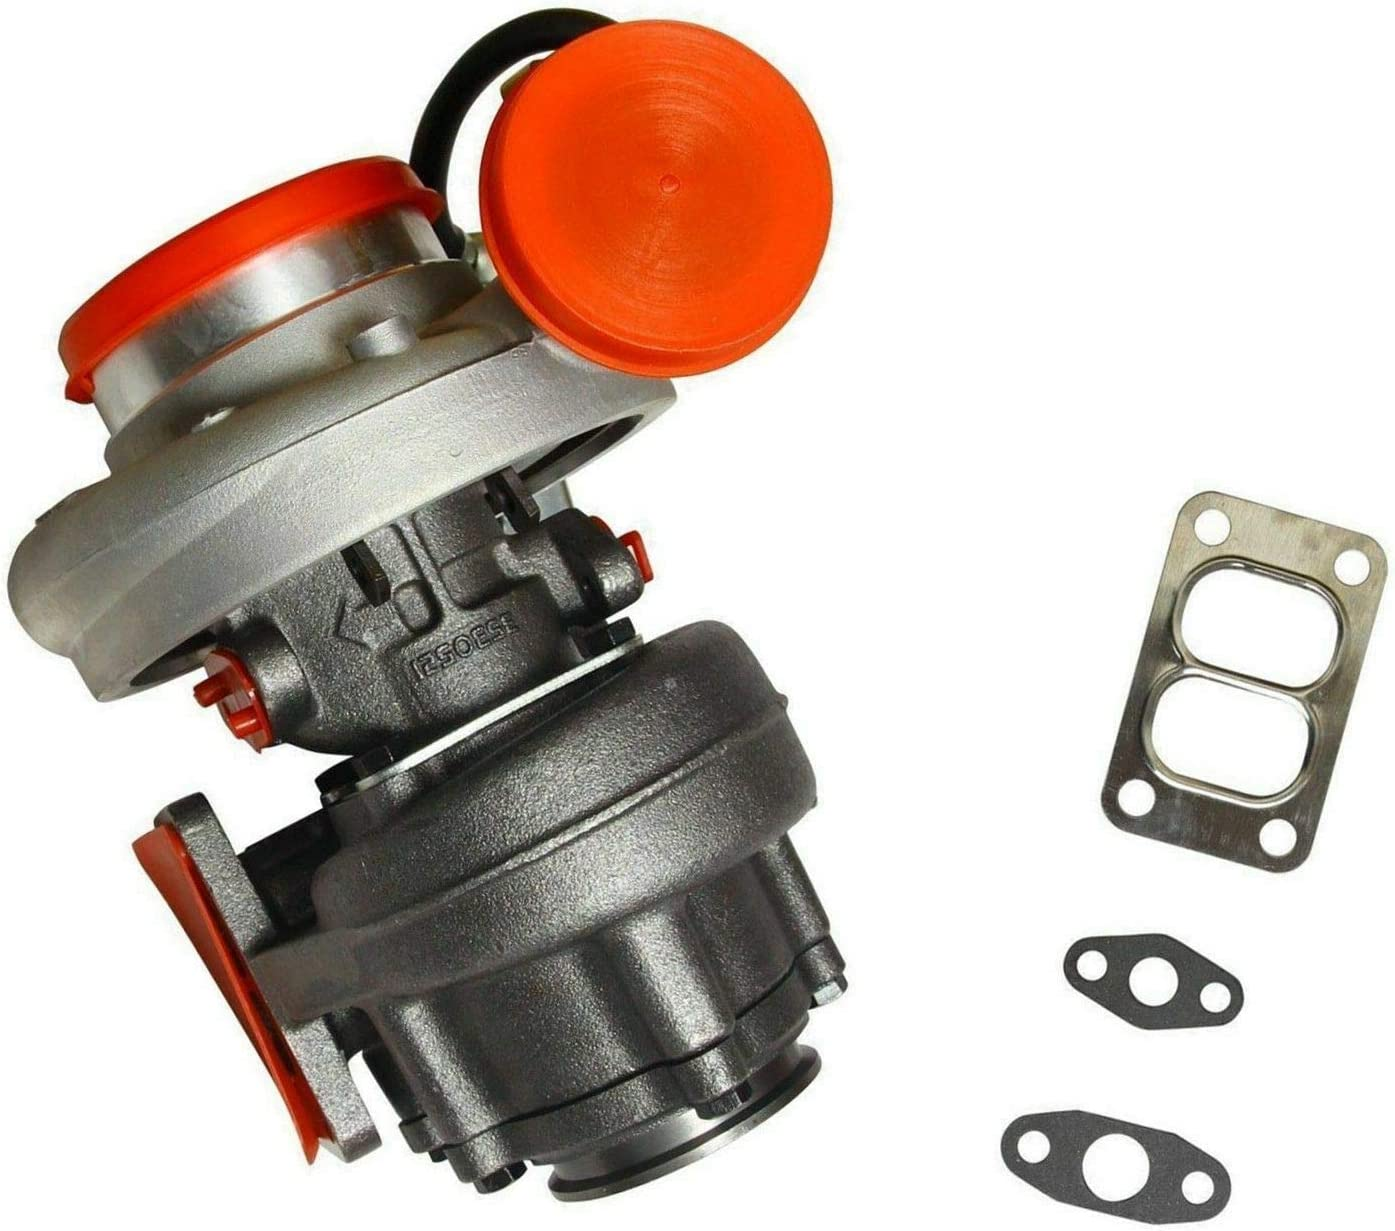 New High Quality Turbocharger For Dodge RAM Cummins Turbo Charger HX40W